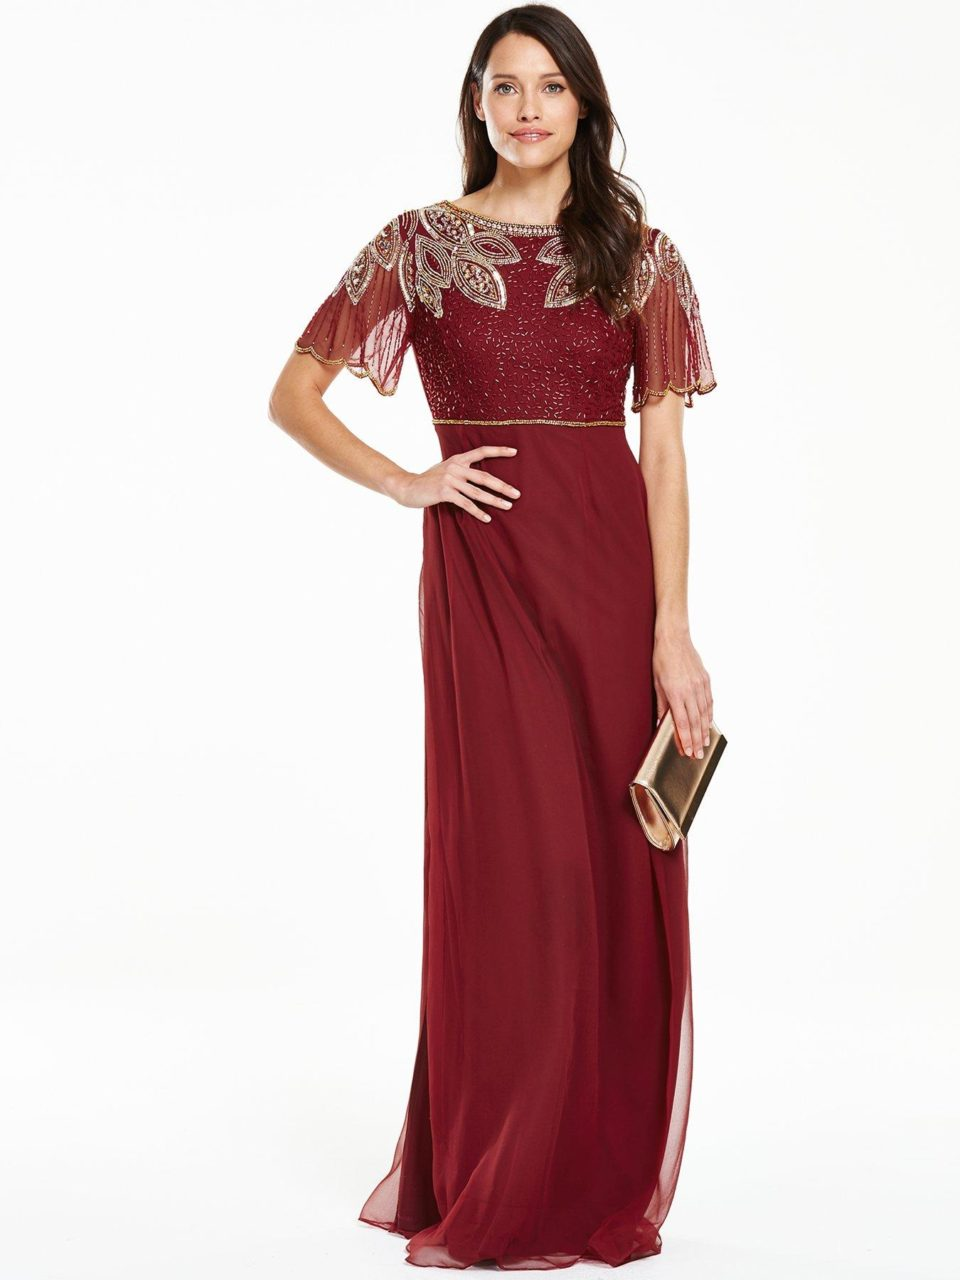 12 stunning sparkly bridesmaid dresses for a winter wedding v by very merlot embellished maxi dress vintage ombrellifo Image collections